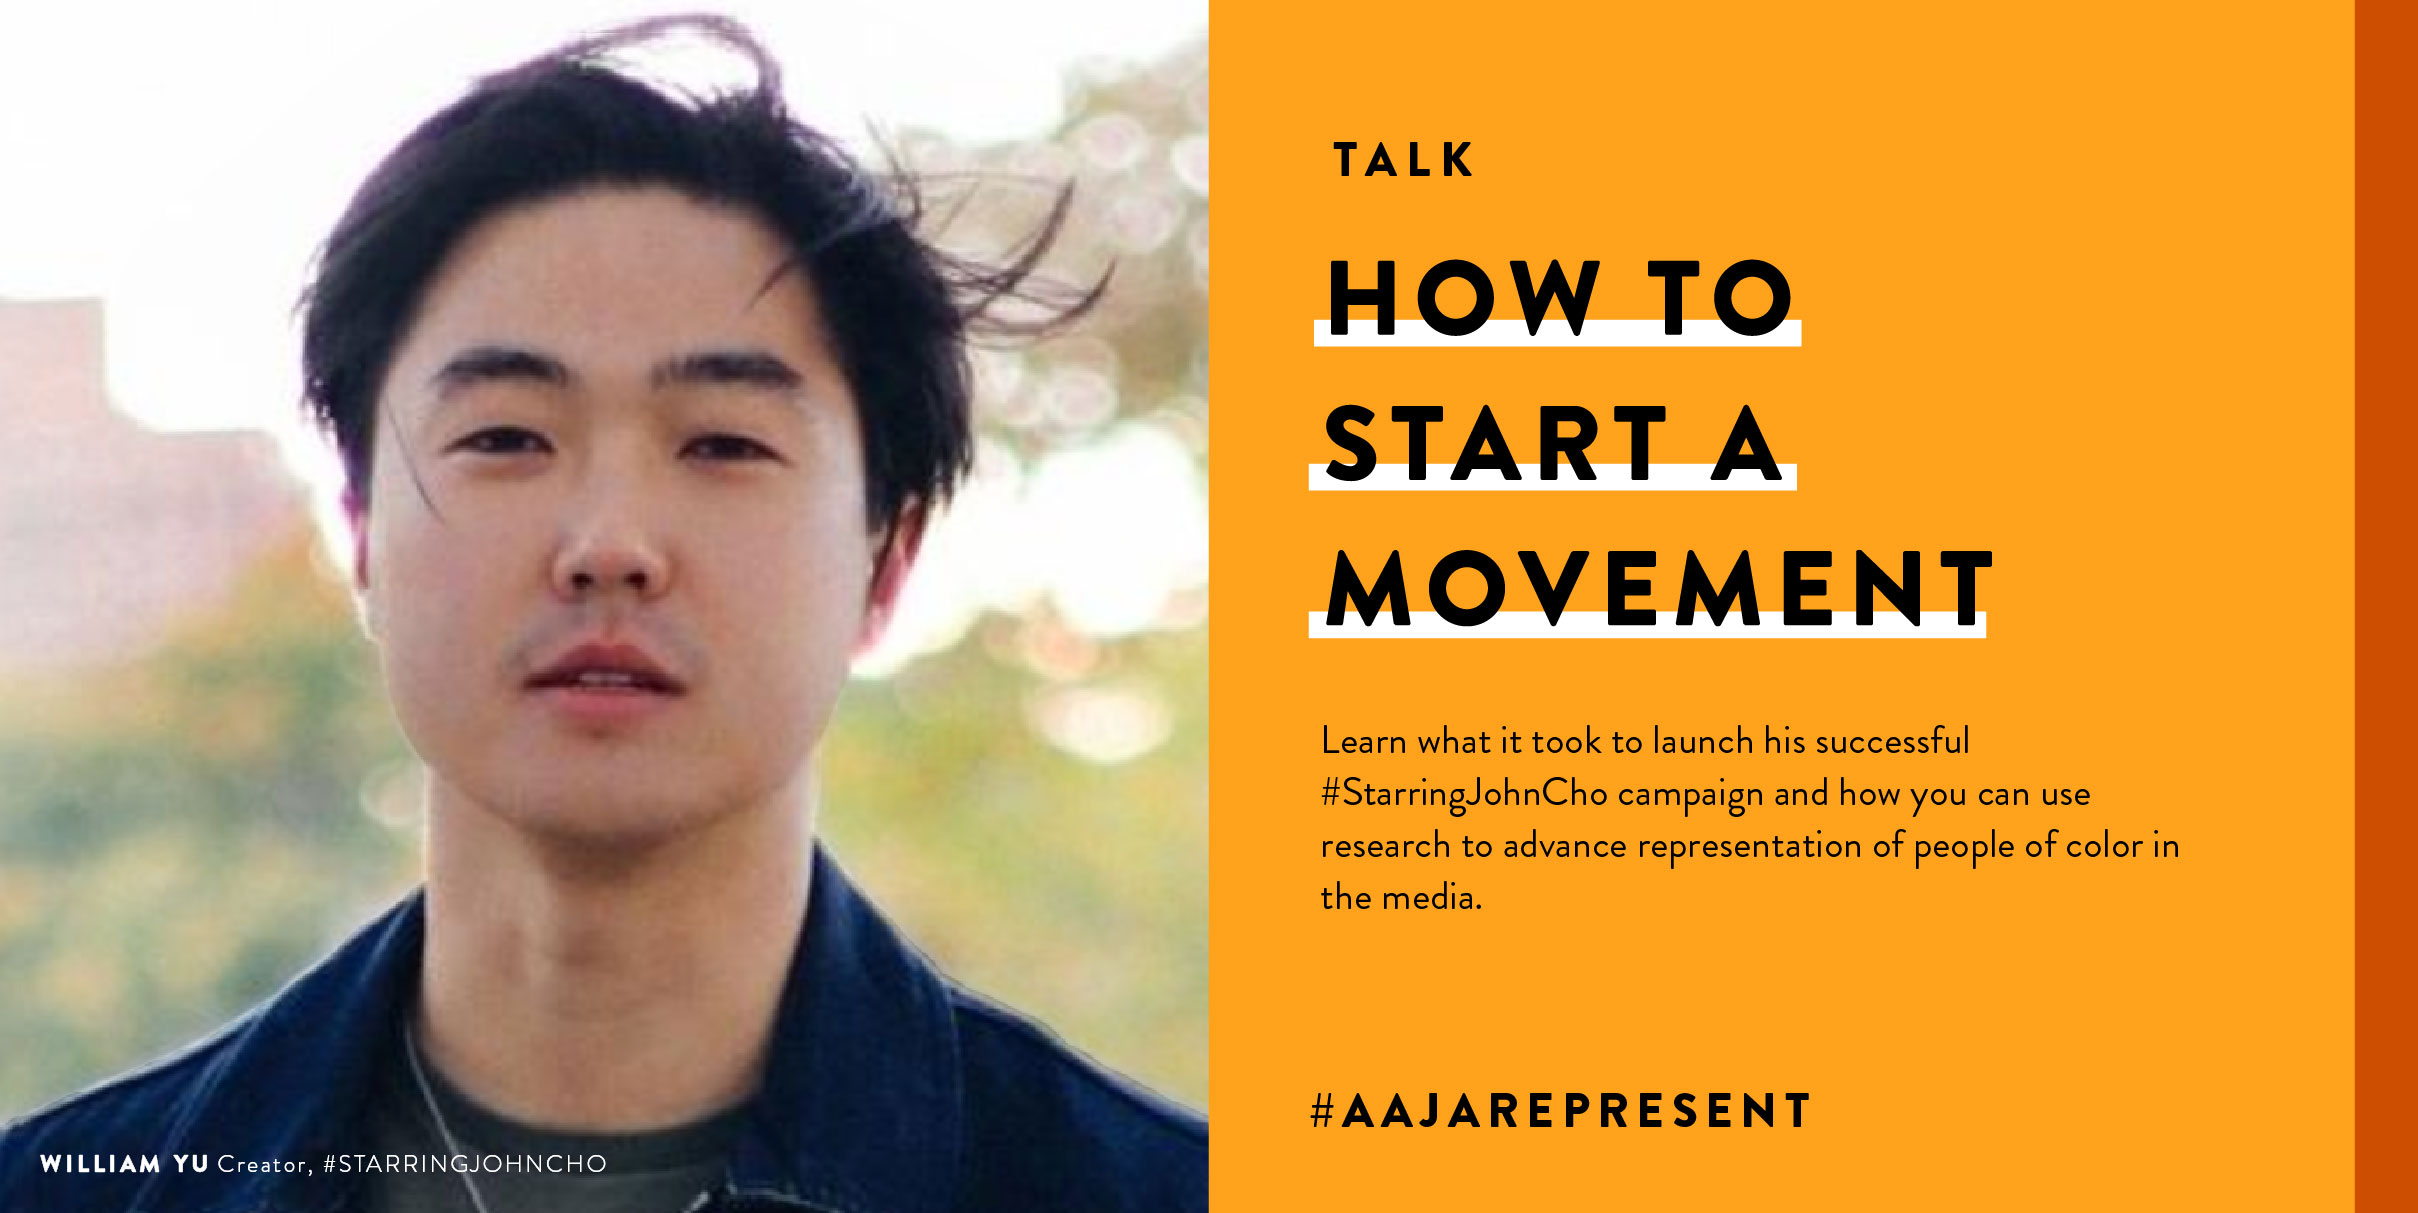 AAJARepresent: How to Start a Movement